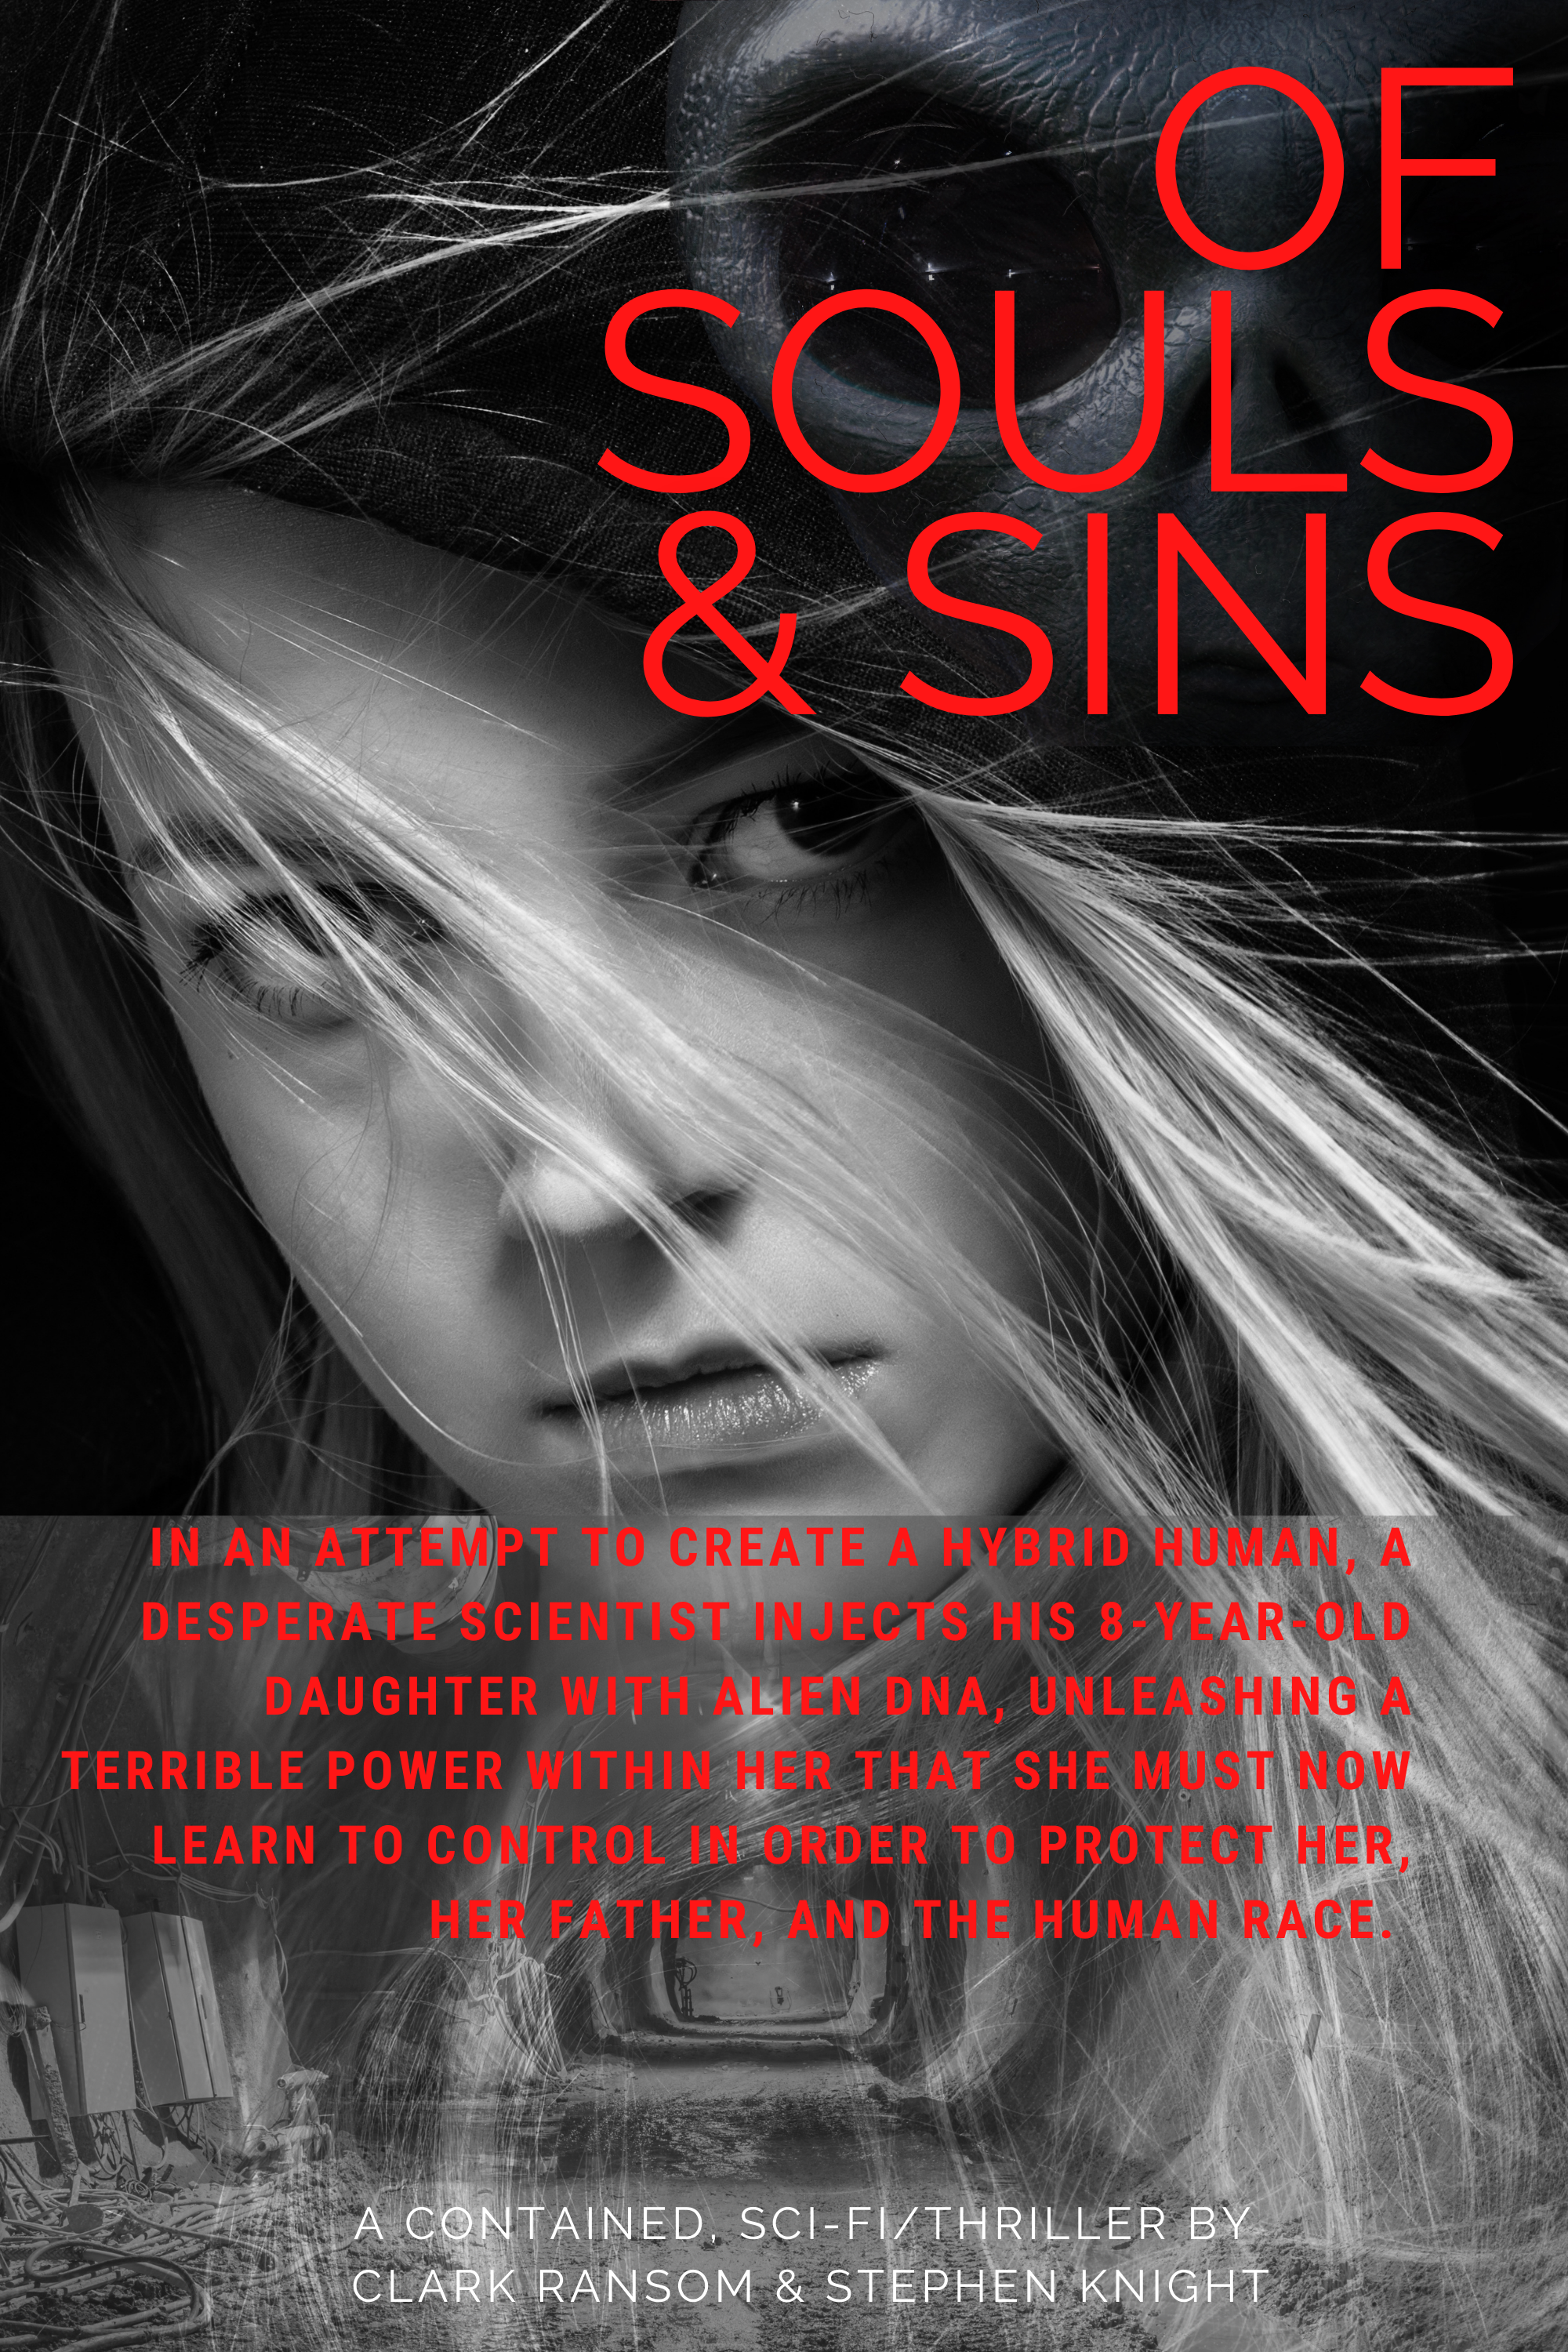 OF SOULS & SINS